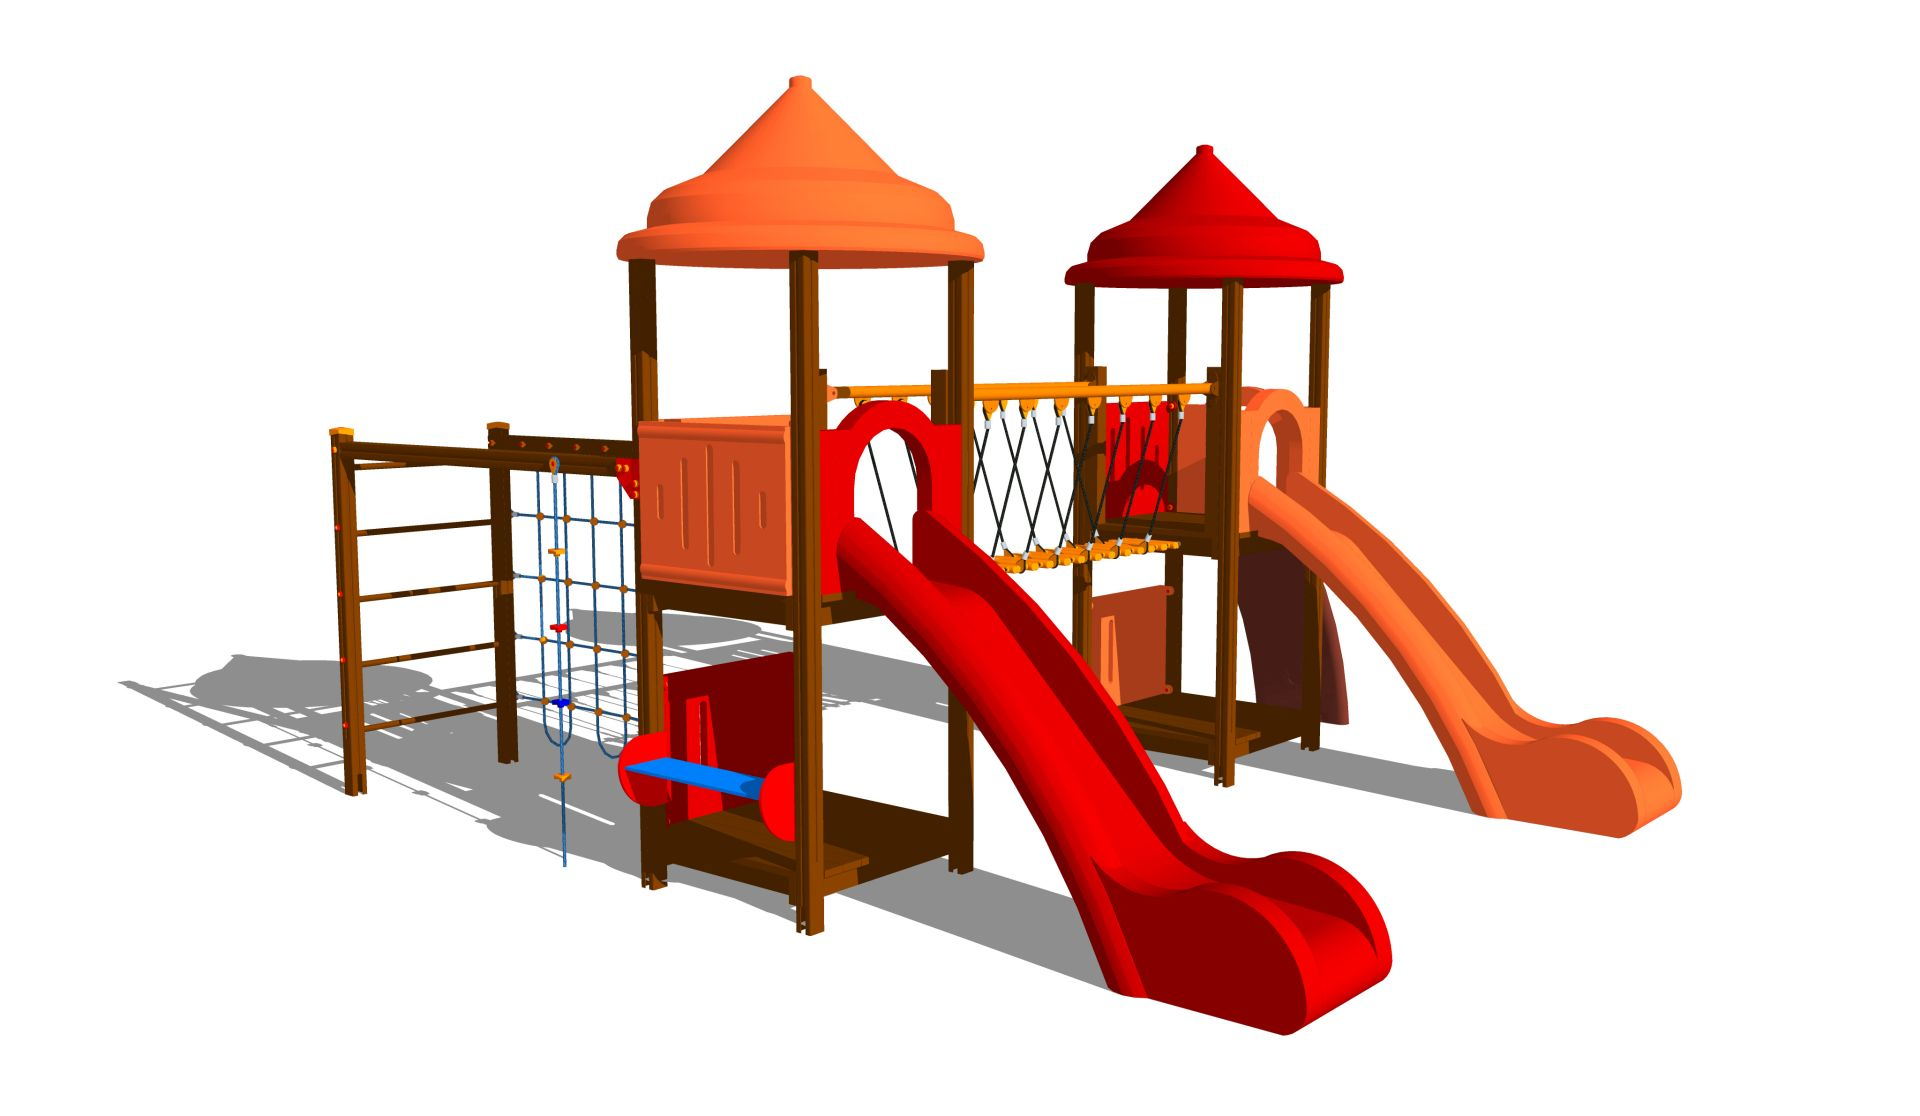 Holzhof MAX & SULTAN Max 2 towers, 2 polyethylene slides h 144, stairway + rope wall climber